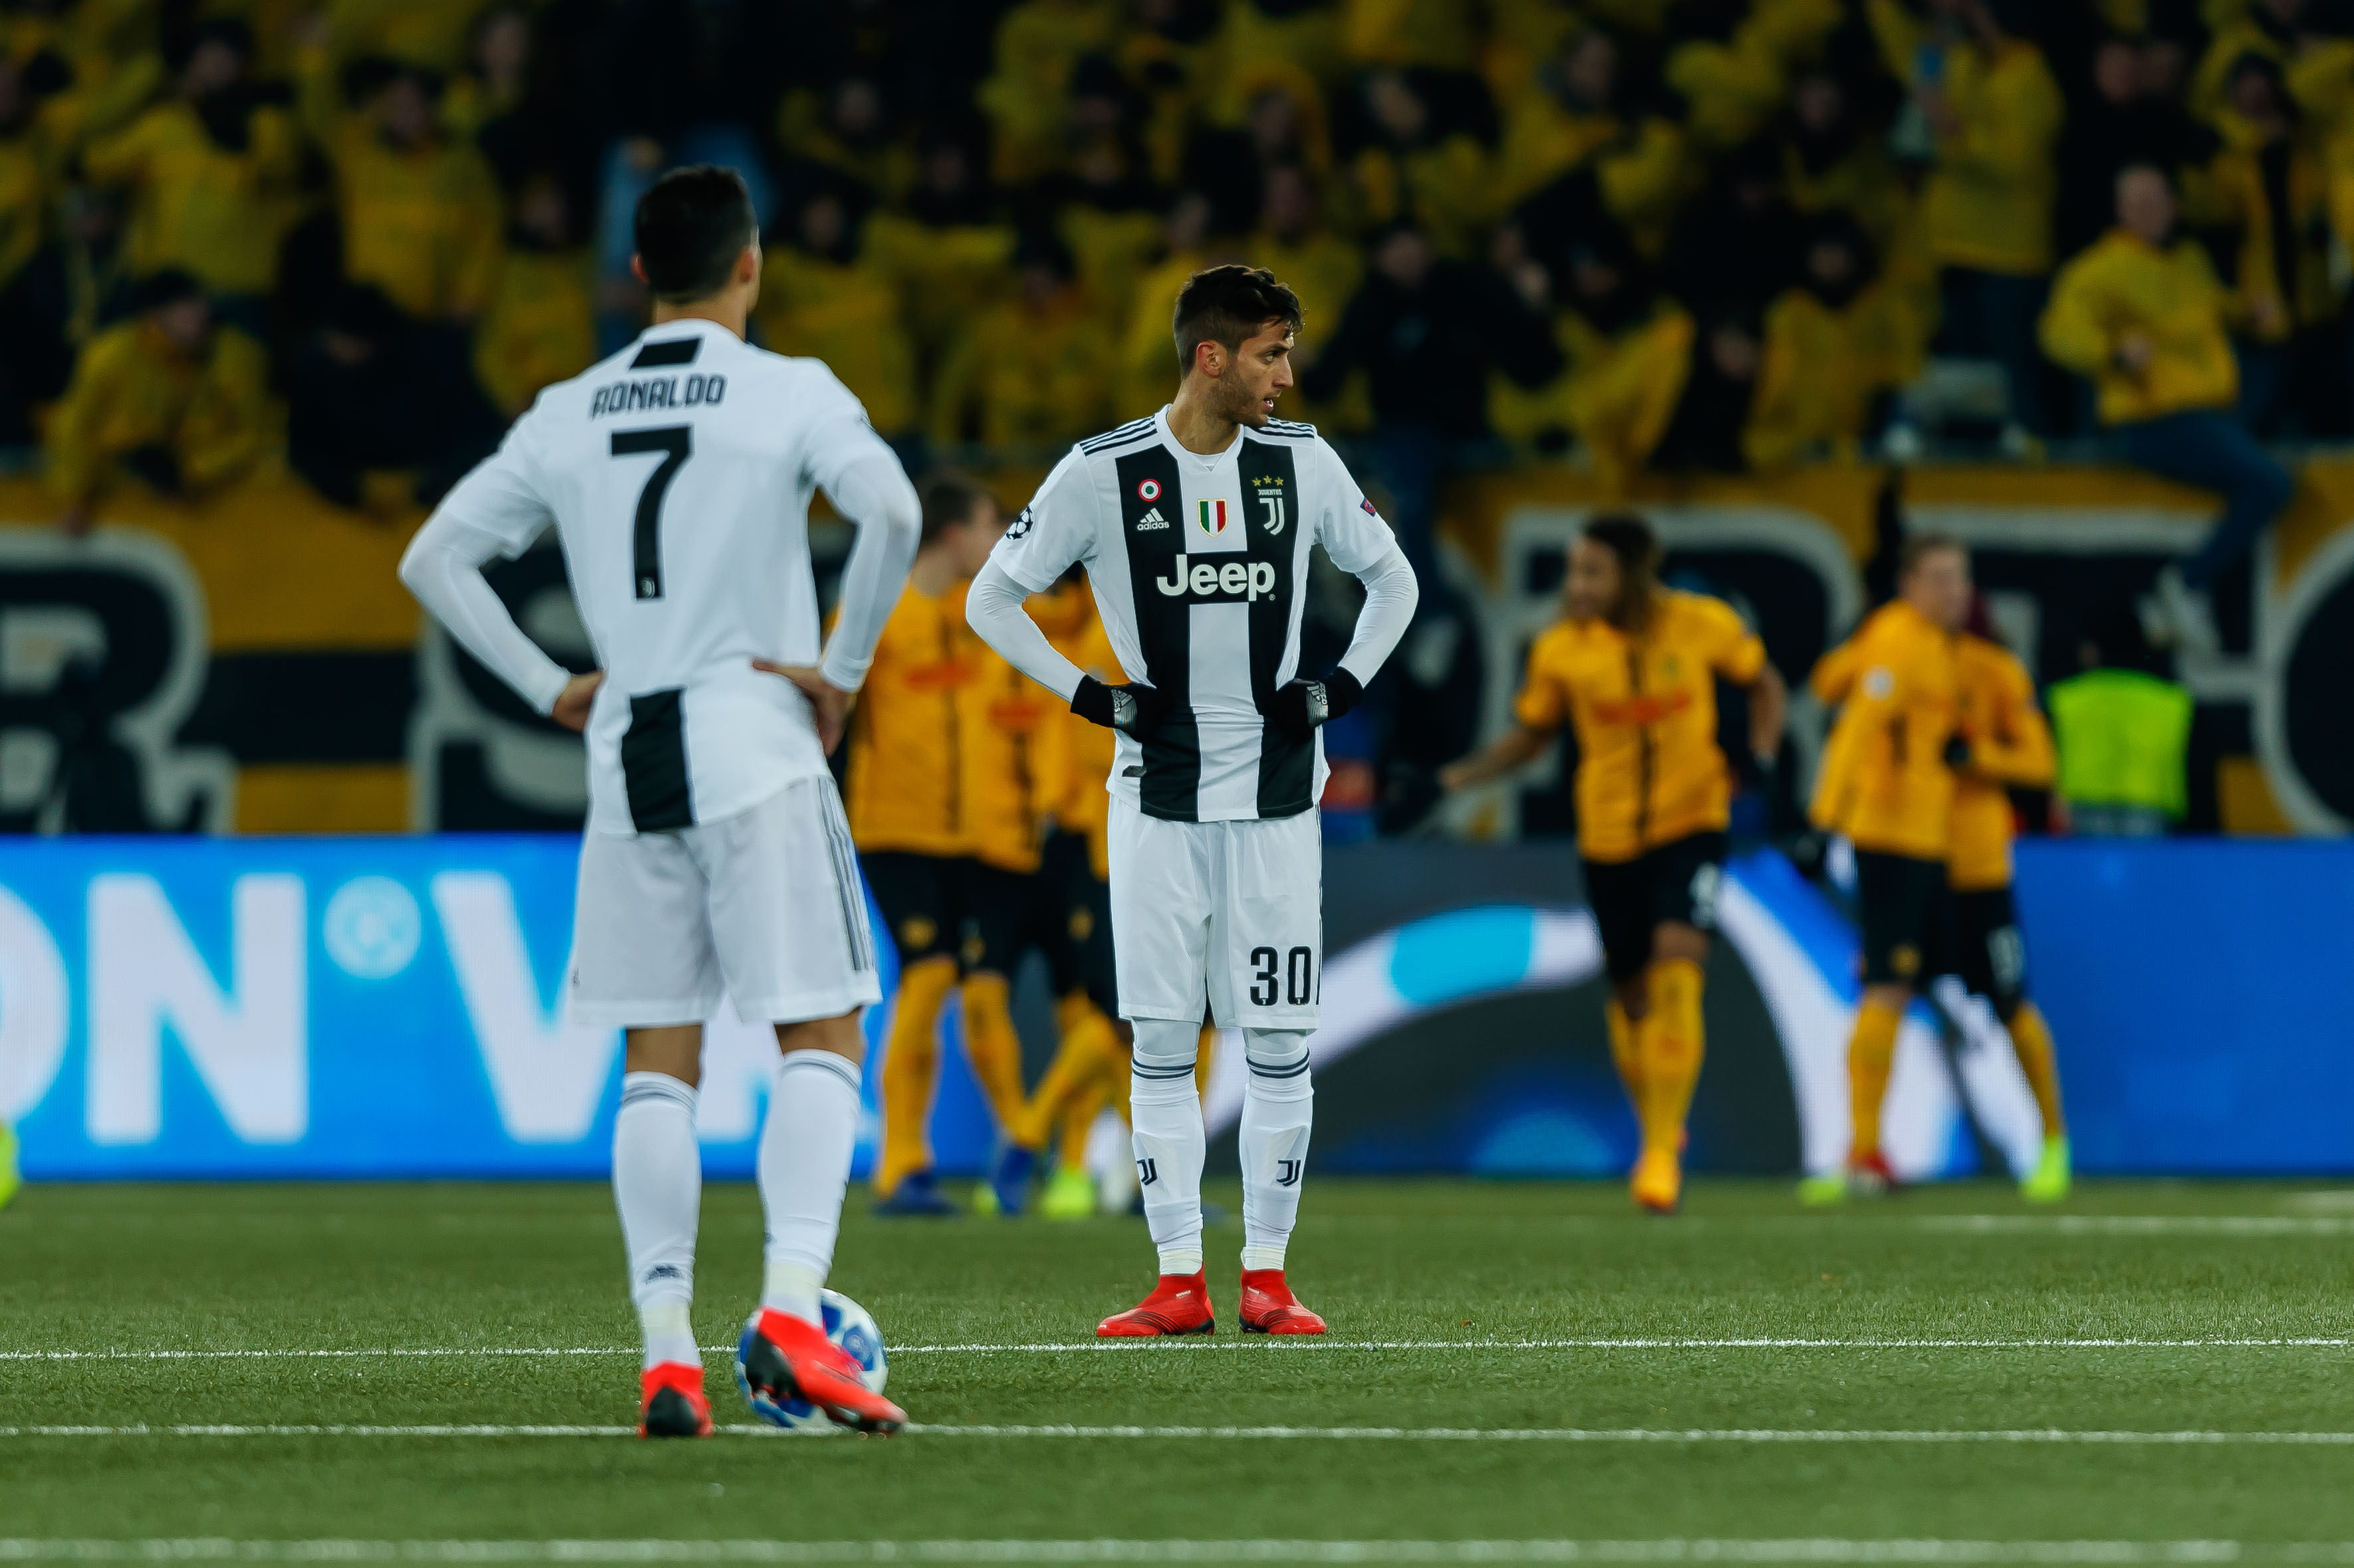 Juve back into Pot 1 in loss to Young Boys - Black & White & Read All Over